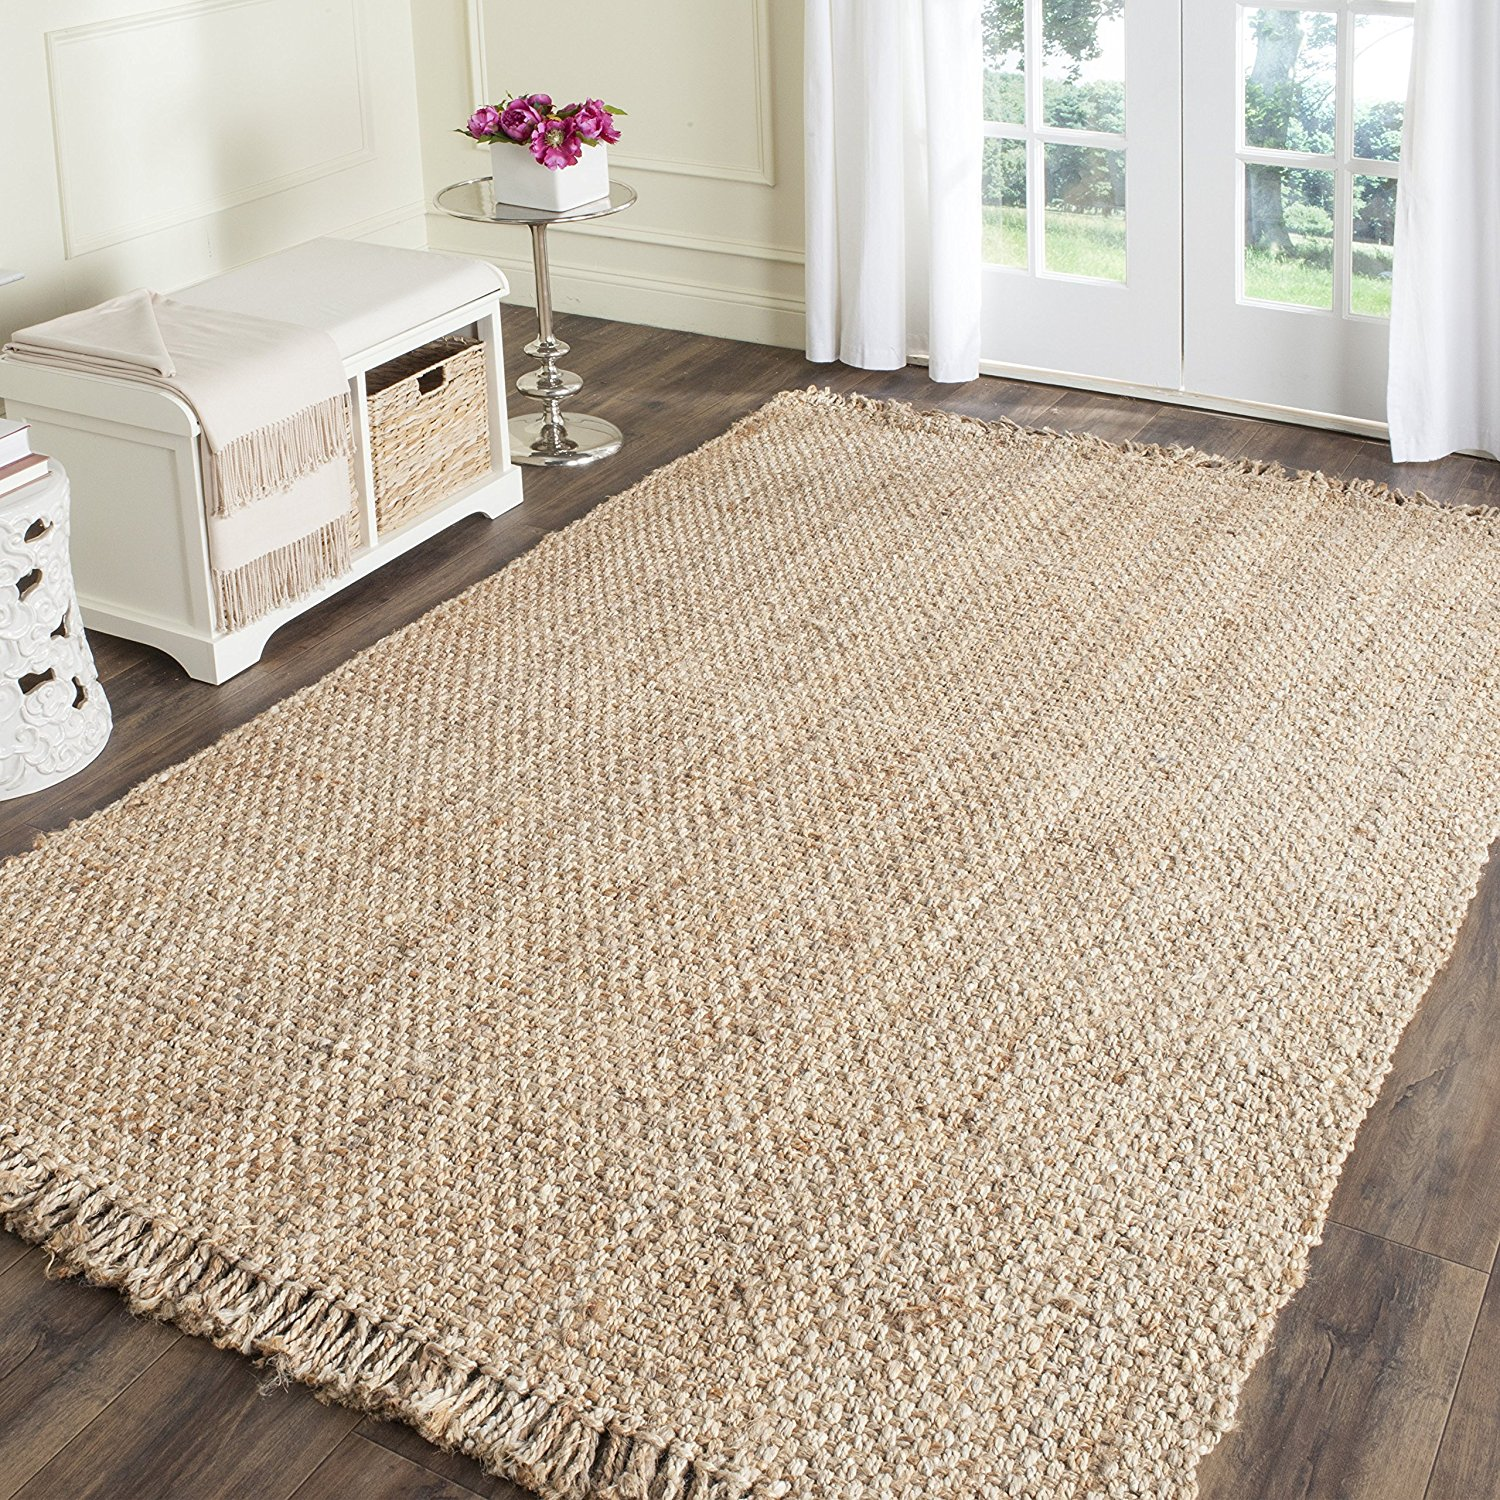 Season 1 Episode 1 Fixer Upper Sitting Room Jute Rug